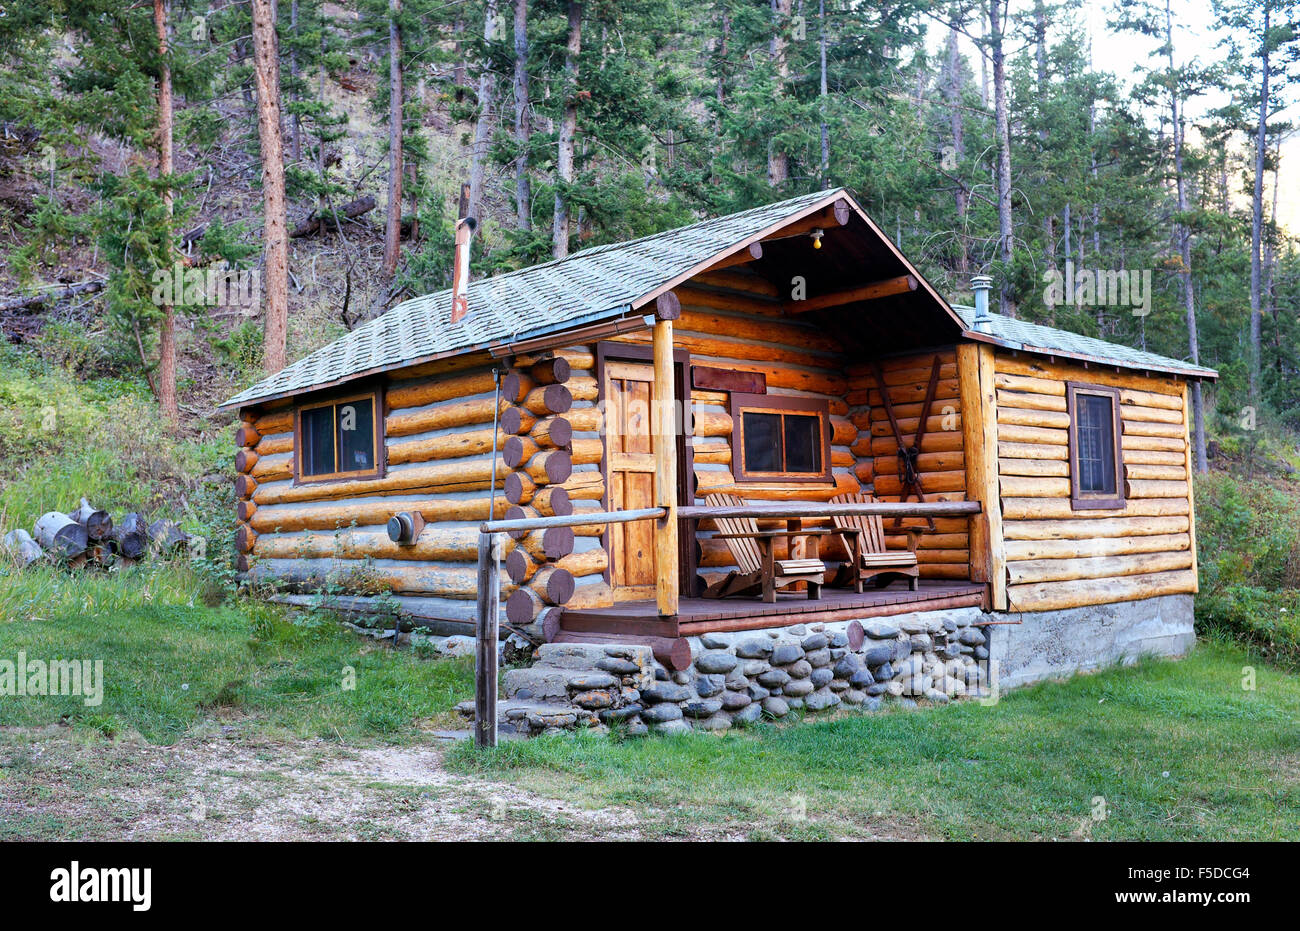 A Small Log Cabin In A Remote Part Of The Absaroka